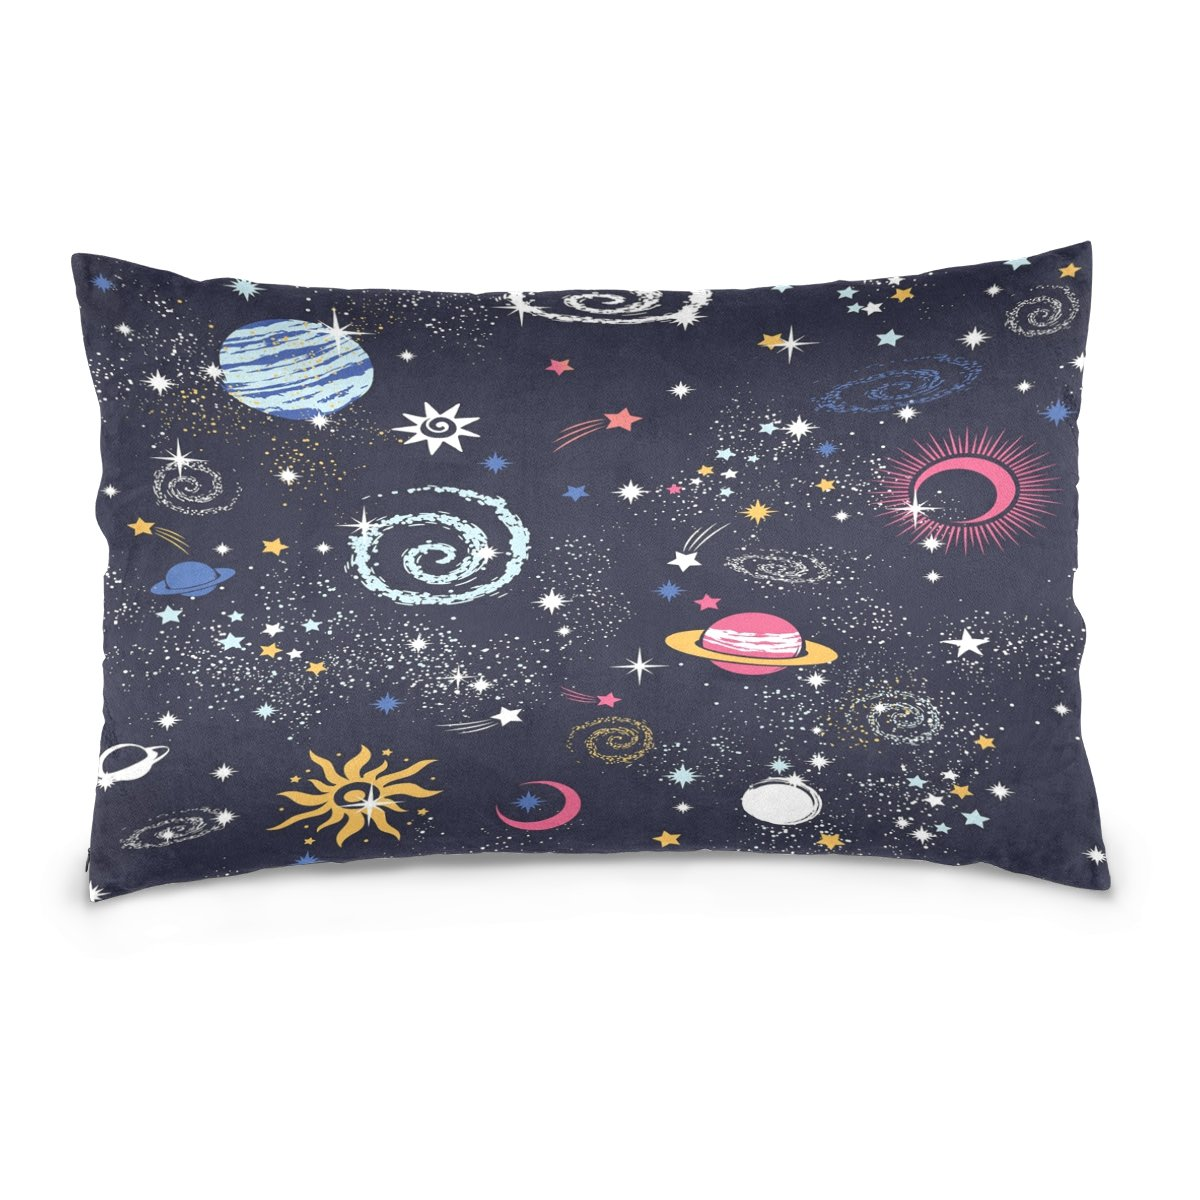 ALAZA Outer Space Galaxy Solar System Constellation Print Cotton Lint Pillow Case,Double-sided Printing Home Decor Pillowcase Size 16''x24'',for Bedroom Women Girl Boy